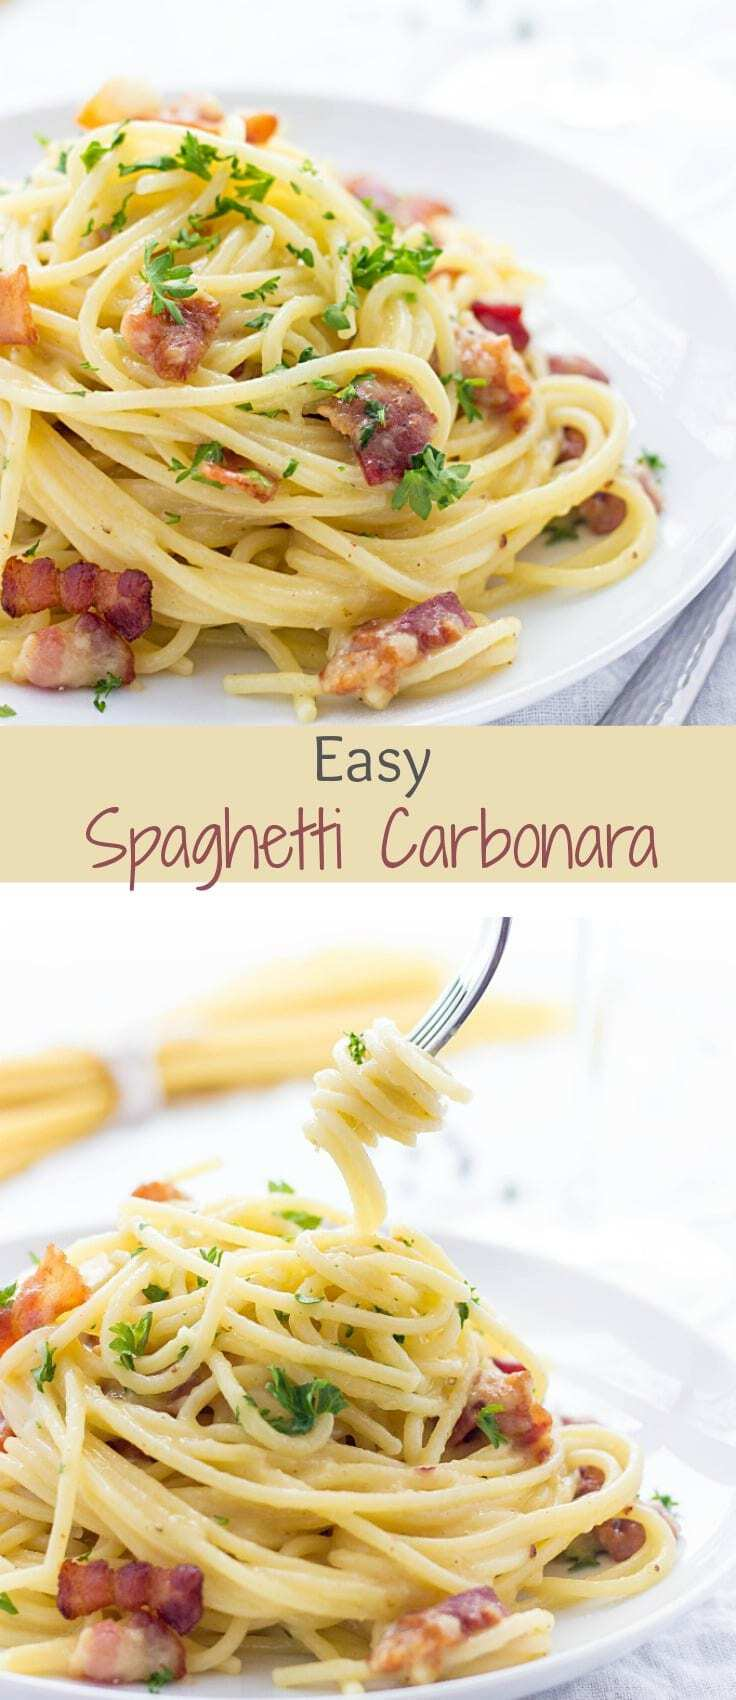 It's a love at first sight! Eggs, cheese and bacon are a no-fail combo. If you've never tried Spaghetti Carbonara, you gotta do it now. It has a silky smooth texture, incredible flavor and rich taste.